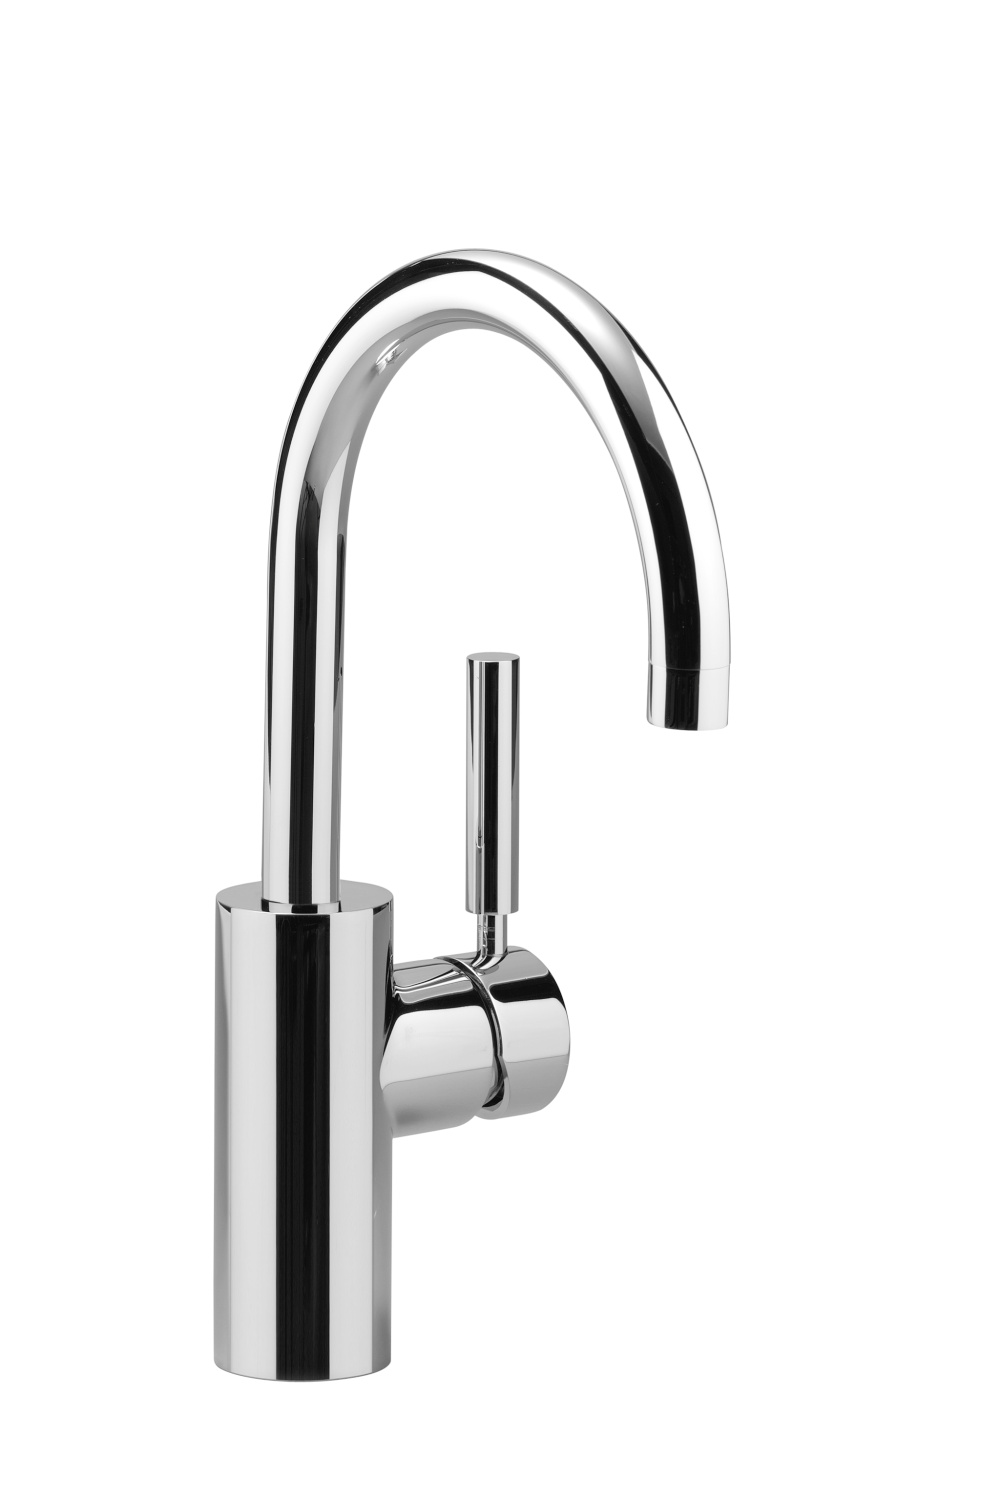 Single-lever basin mixer without pop-up waste - platinum matt - 33 520 885-06